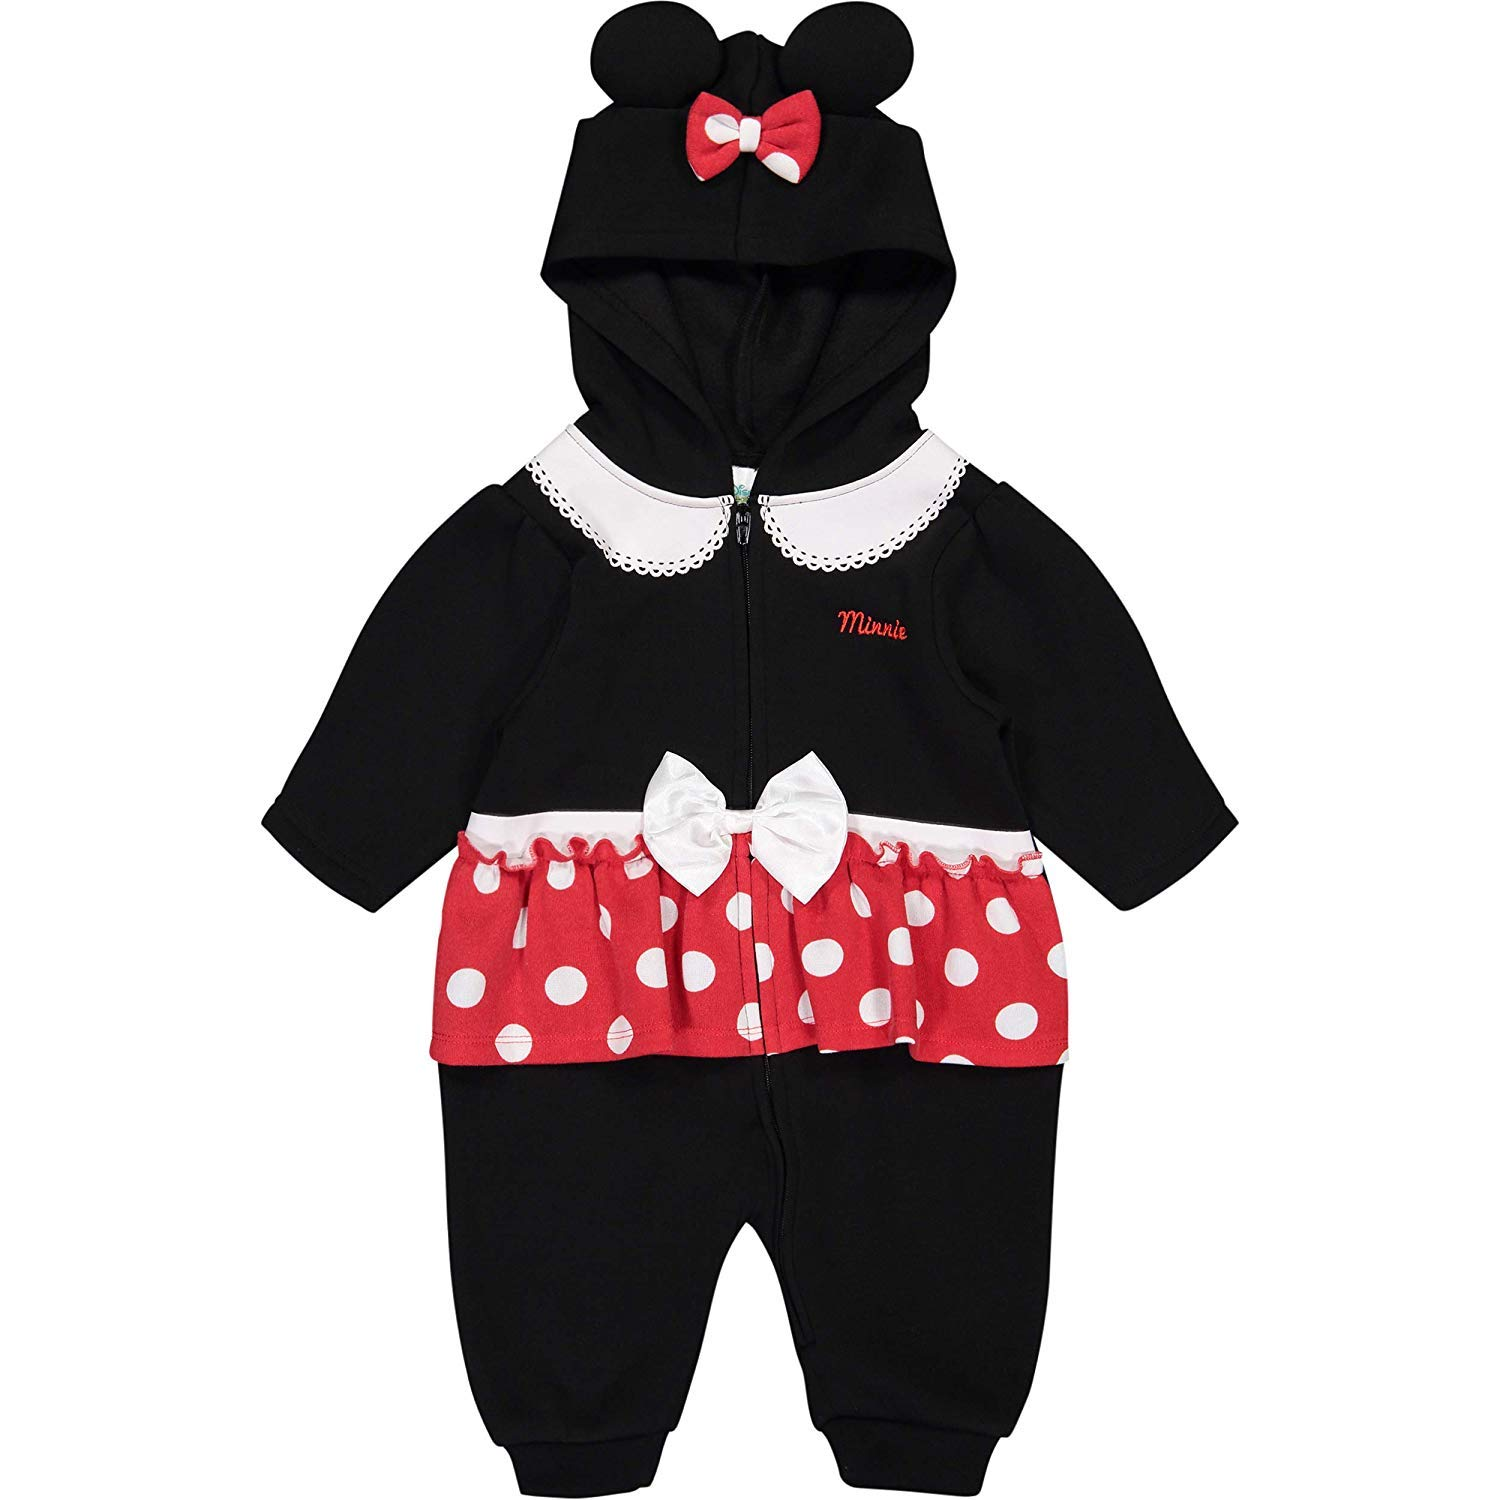 b24da44a3 Amazon.com: Disney Minnie Mouse Baby Girls' Fleece Zip-Up Costume Coverall  with Hood: Clothing